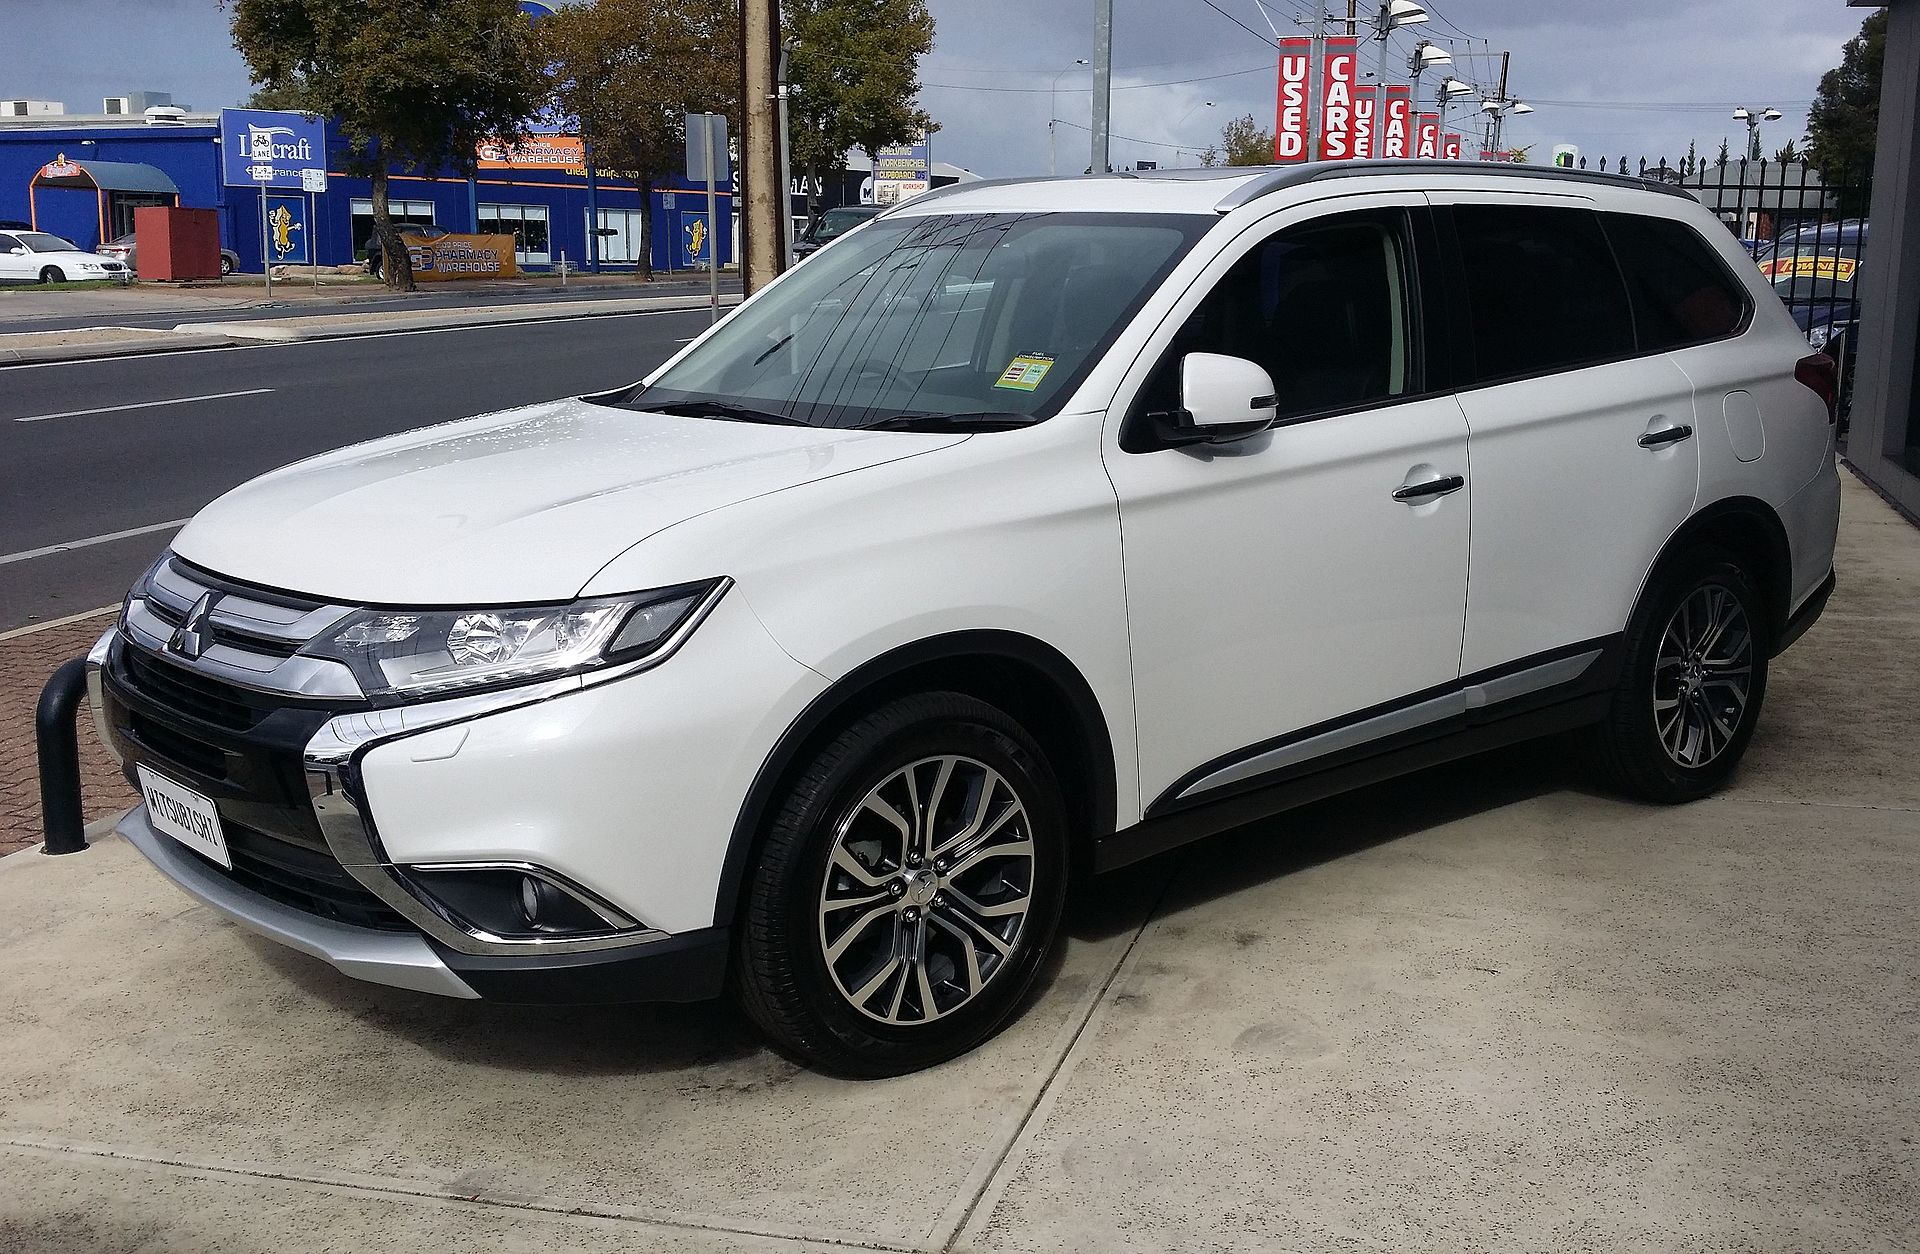 2015_mitsubishi_outlander_exceed_did_ 17167498526 jpg